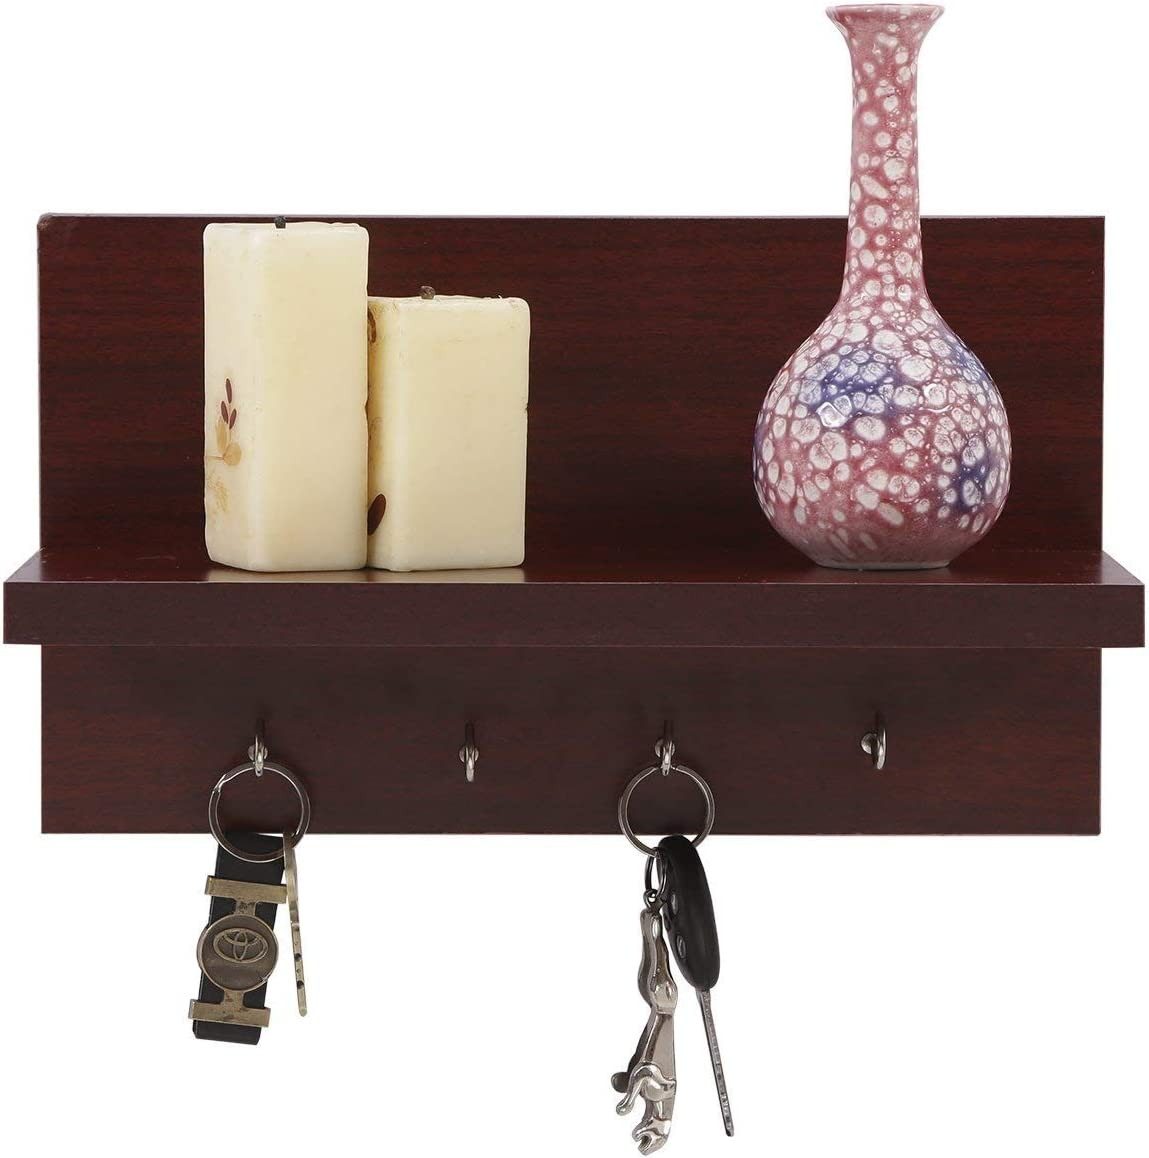 Amazon Com Willart Wall Hanging Key Holder For Home Decor Handcrafted Wooden Design Key Hooks Key Rack And Key Hangers With Floating Shelves Organizer Home Kitchen